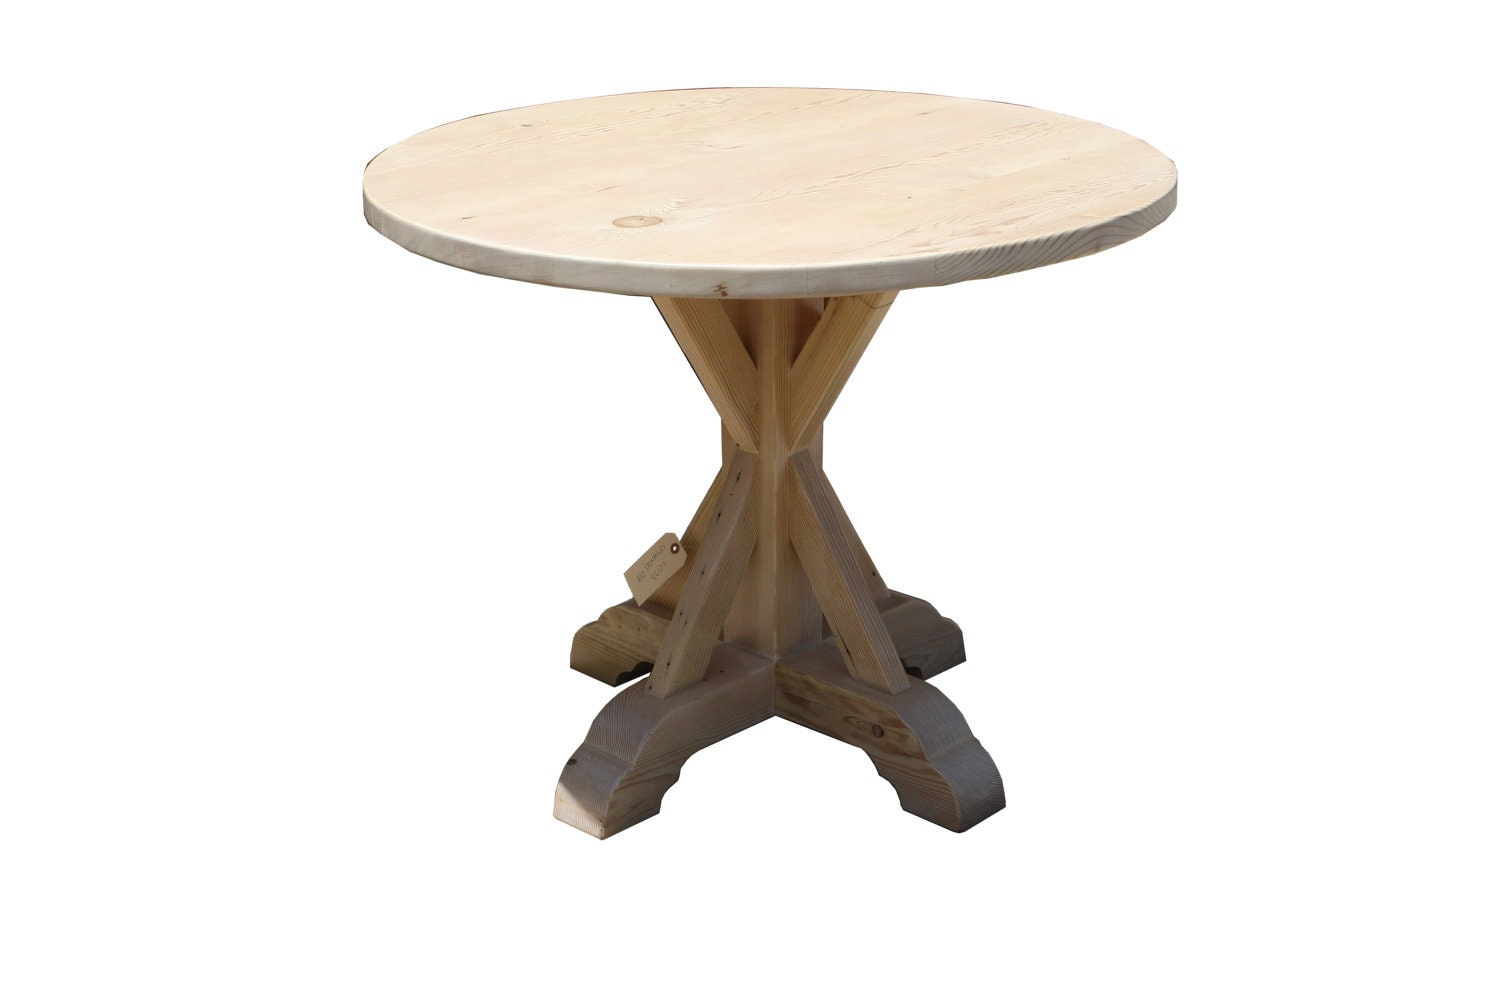 Items Similar To Round Reclaimed Wood Dining Table On Etsy